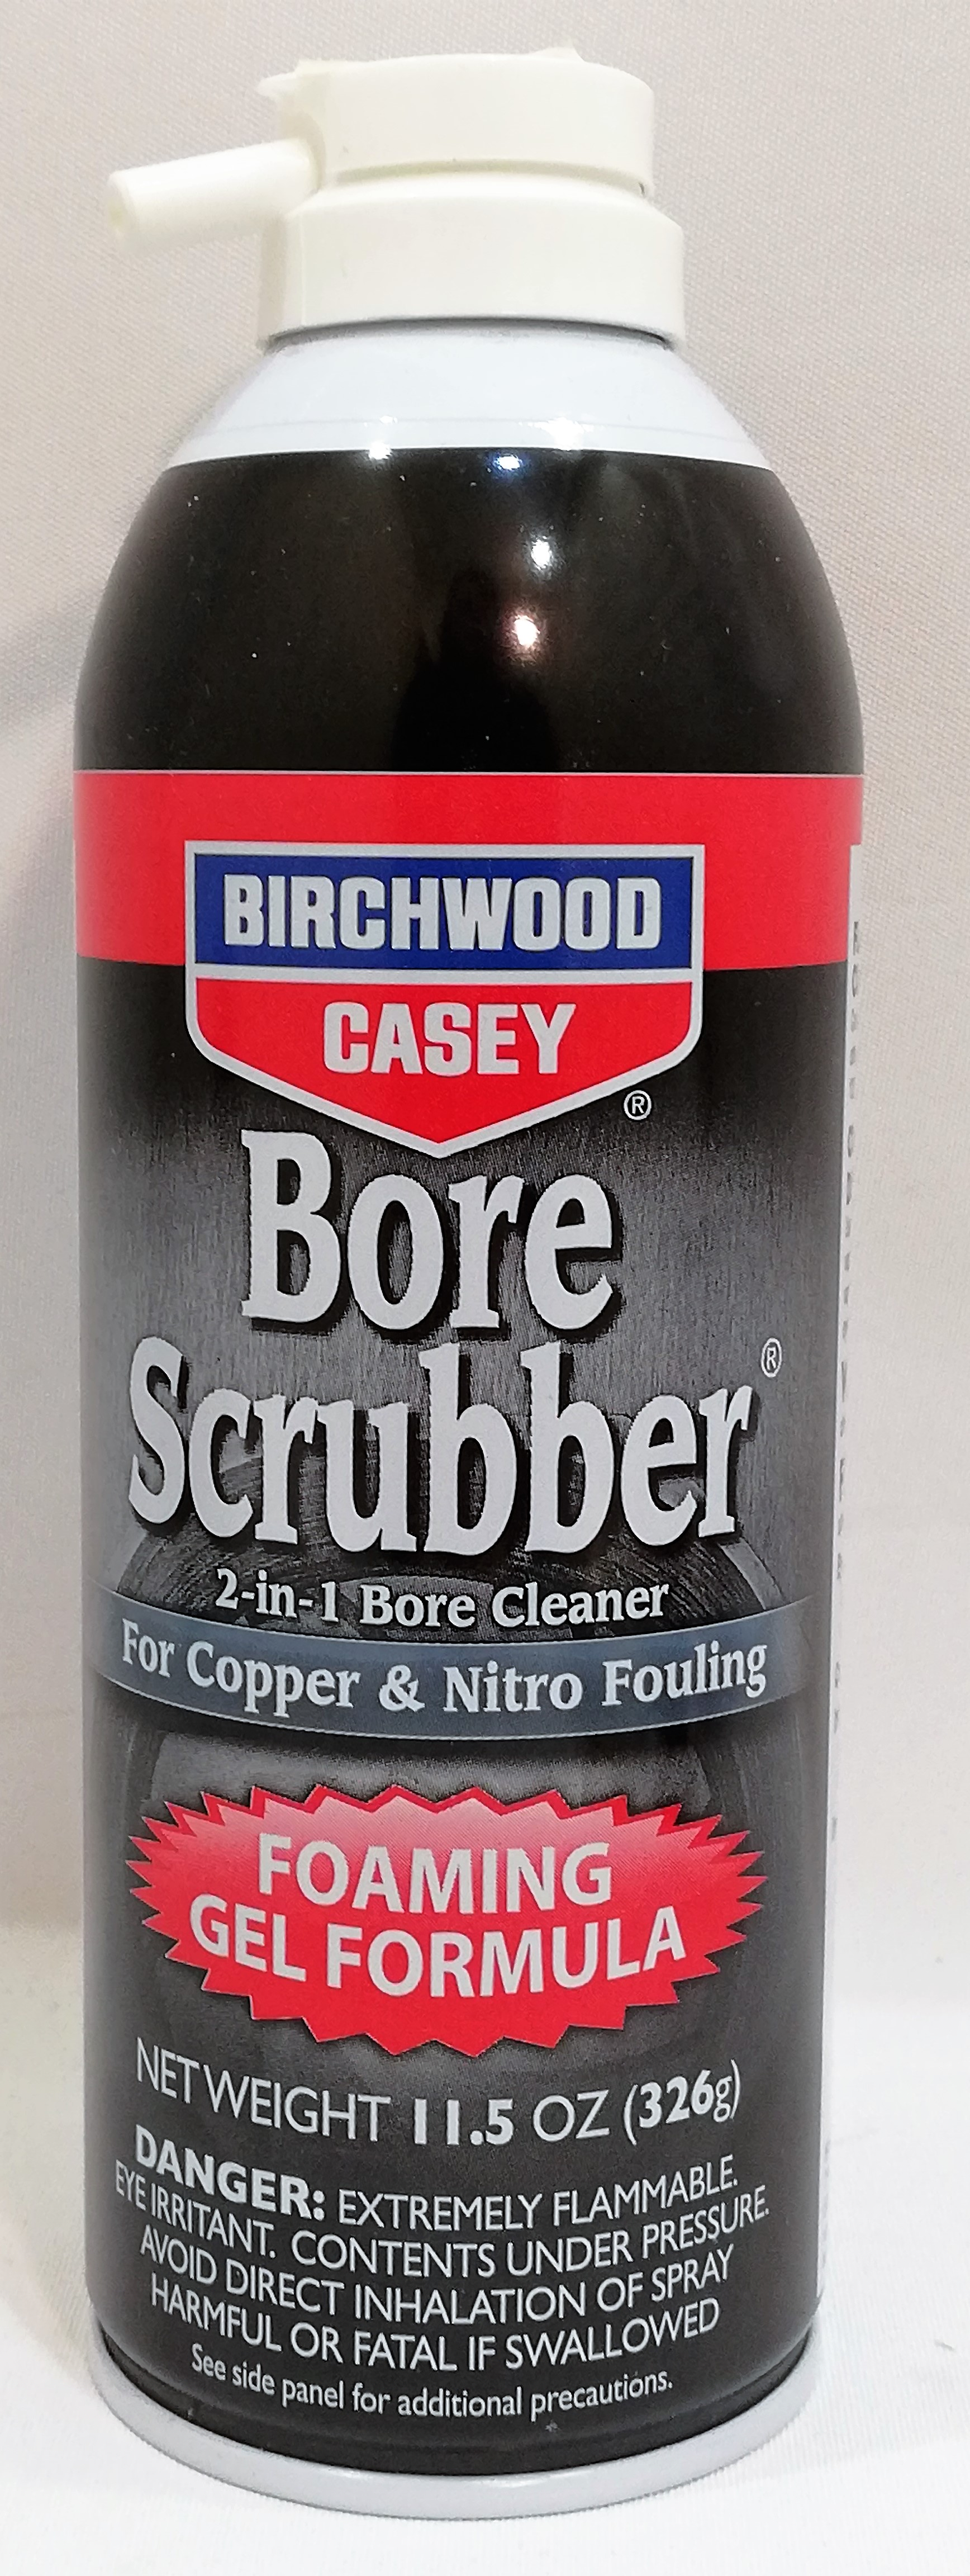 Birchwood Bore Scrubber    283g          (kuparinpoistoaine)